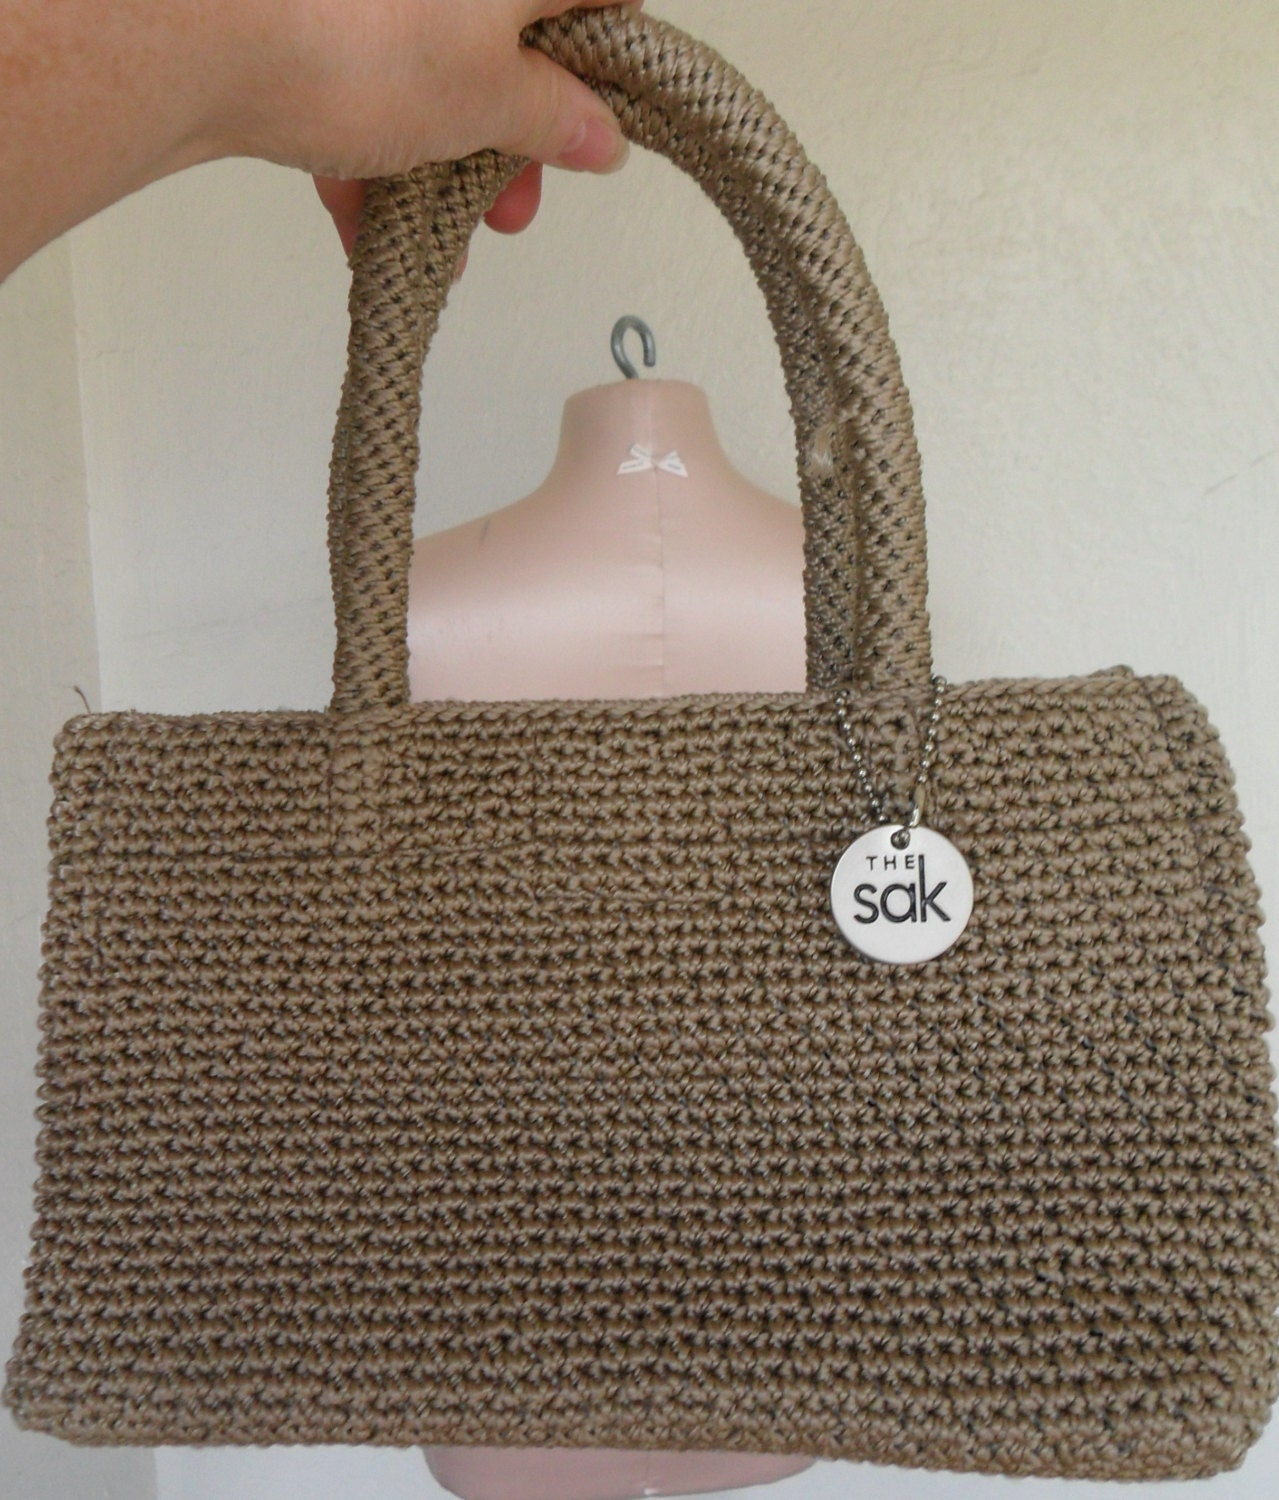 The Sak Bags Crochet : Vintage The Sak Crochet Purse Elliott Lucca by desertgraceboutique